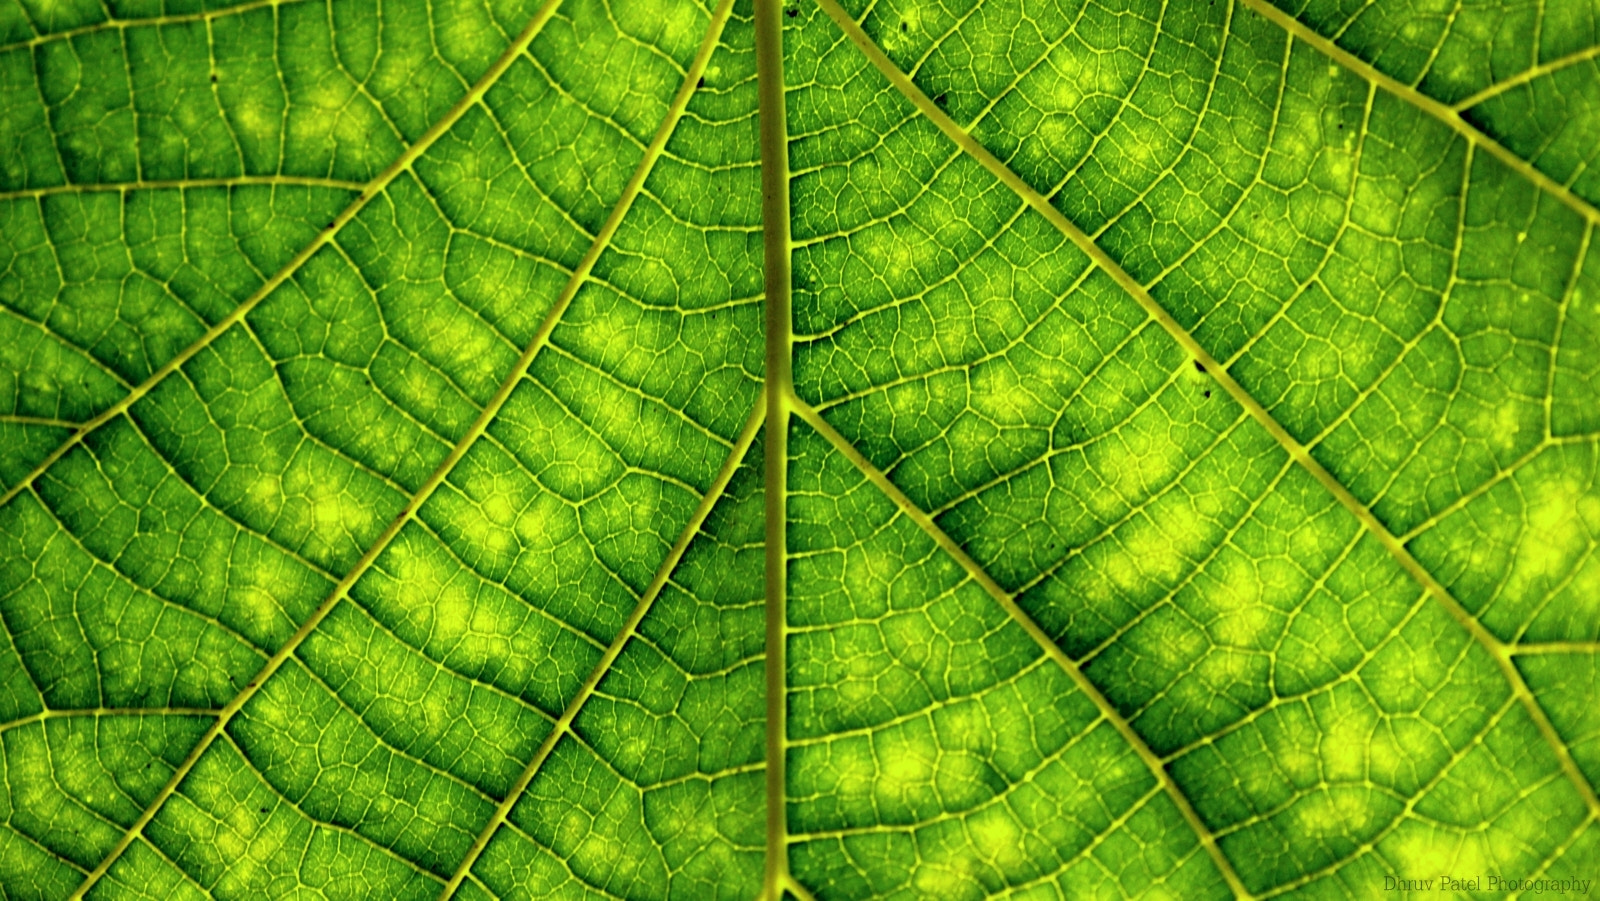 Photograph Leaf Pattern by Dhruv Patel on 500px